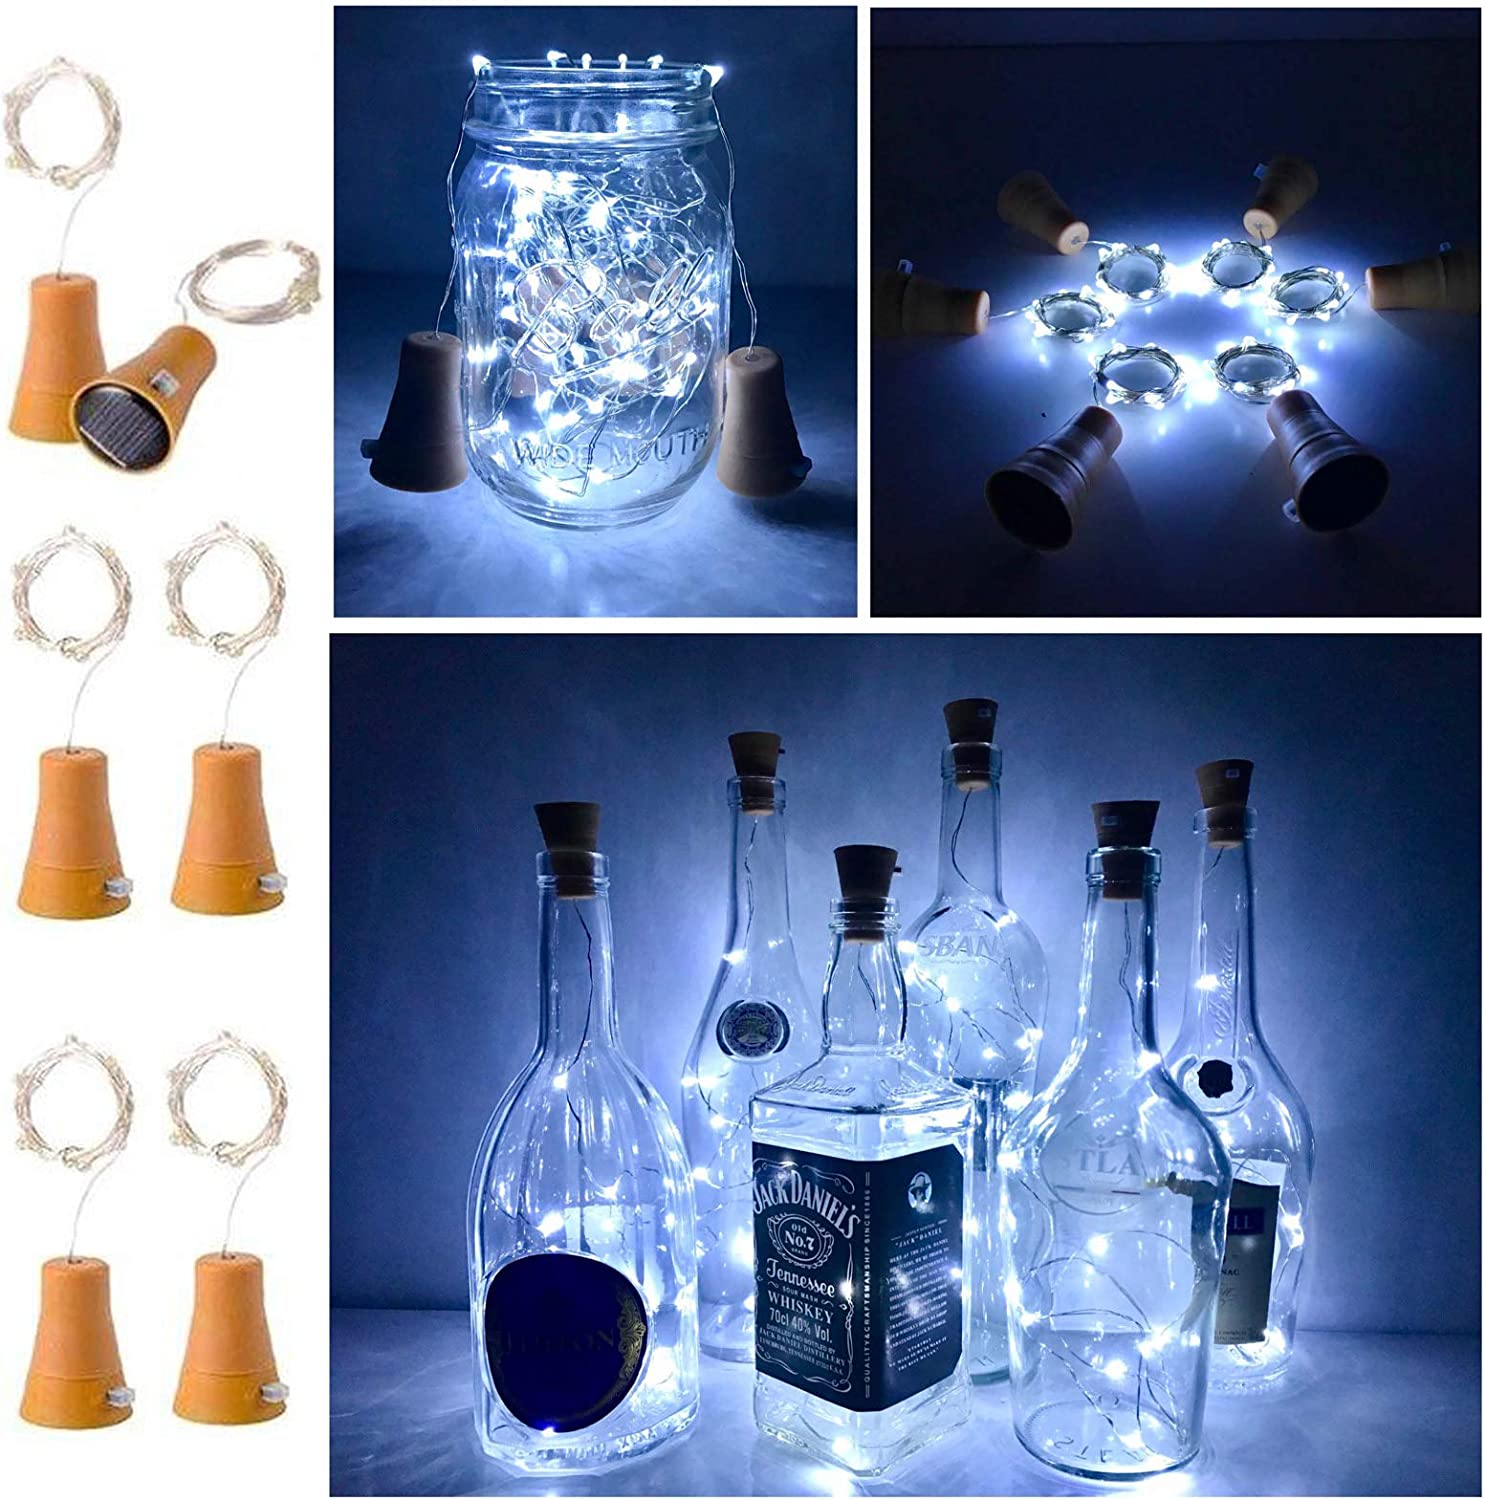 6 Pack Solar Powered Wine Bottle Lights, 20 LED Waterproof Copper Cork Solar Lights for Wedding Christmas, Outdoor, Holiday, Garden, Patio, Pathway Decor (Cool White)